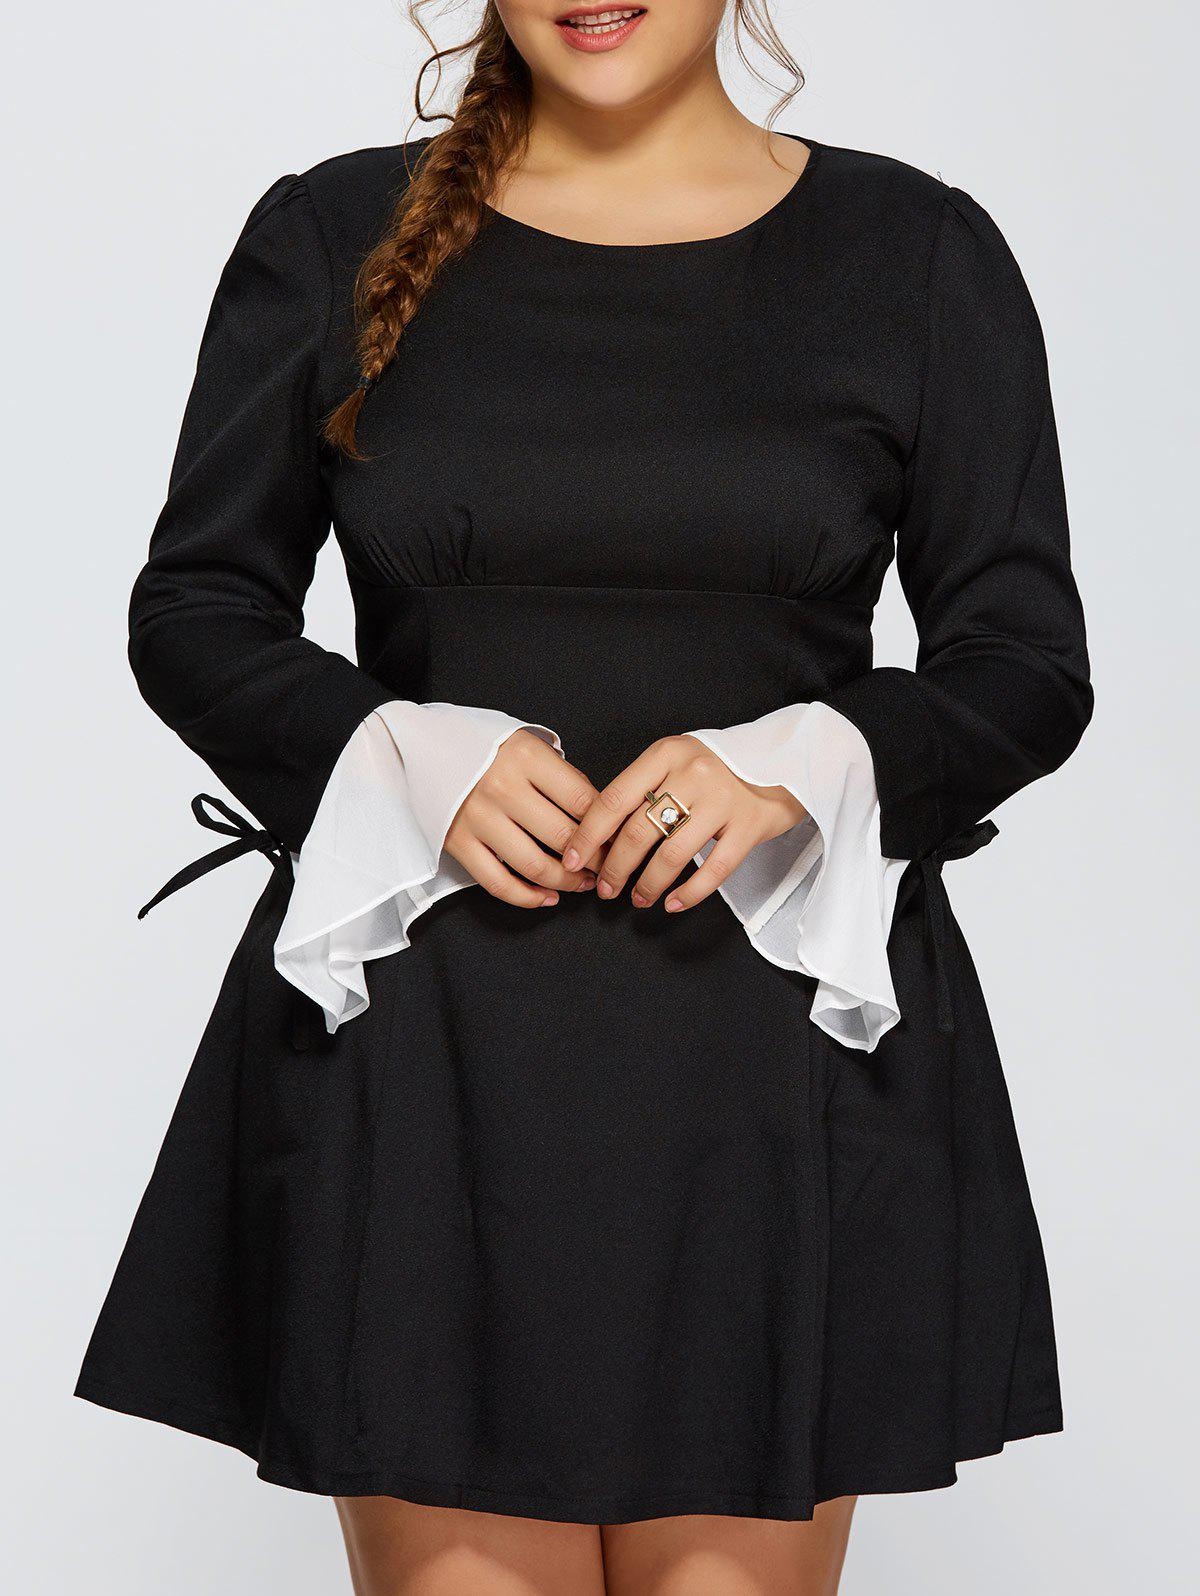 Plus Size Chiffon Cuff Insert Long Sleeve Empire Waist Skater Dress - BLACK 3XL